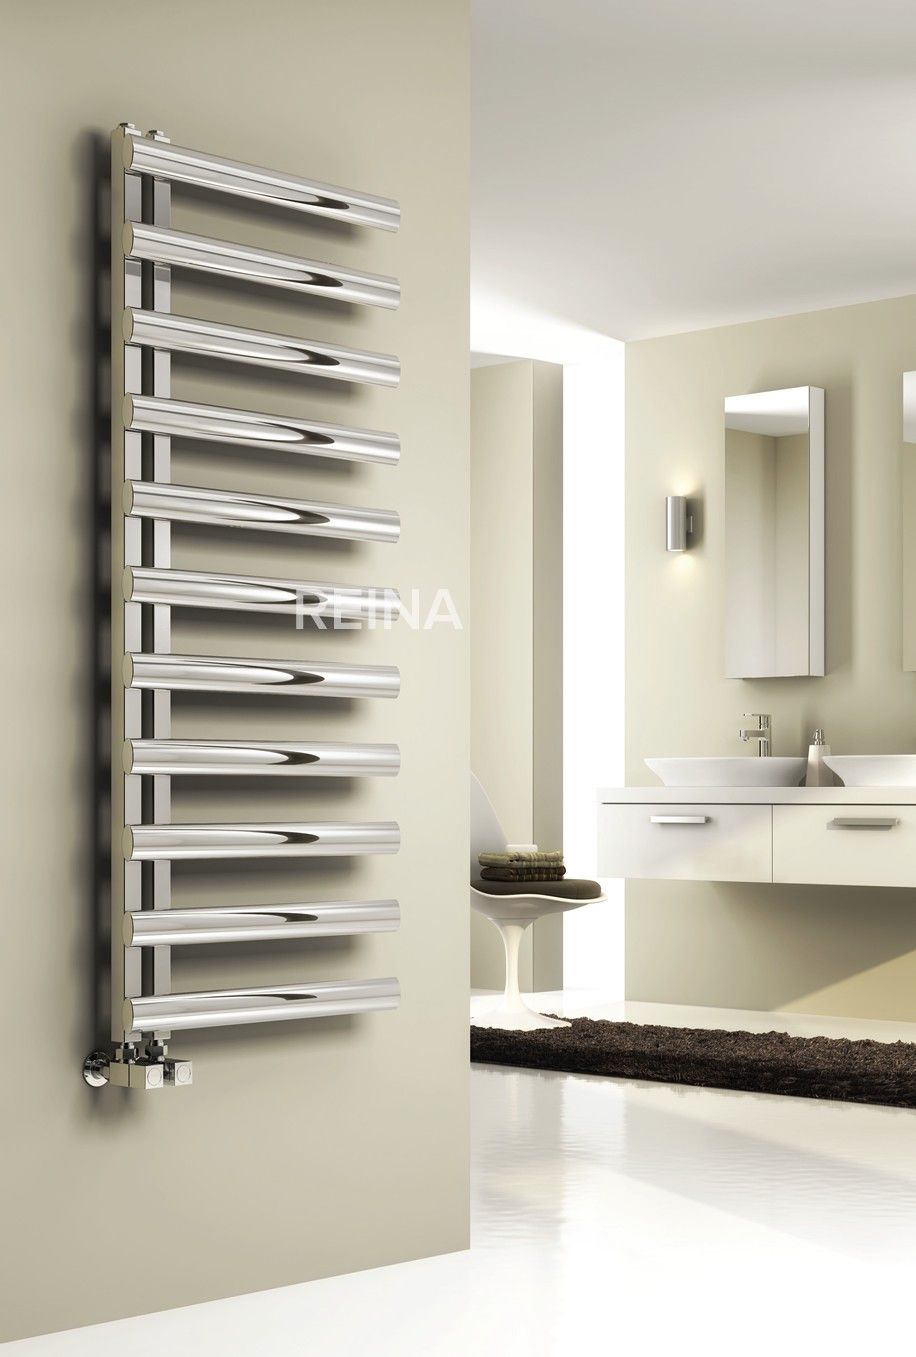 REINA CAVO STAINLESS STEEL HEATED TOWEL RAILS